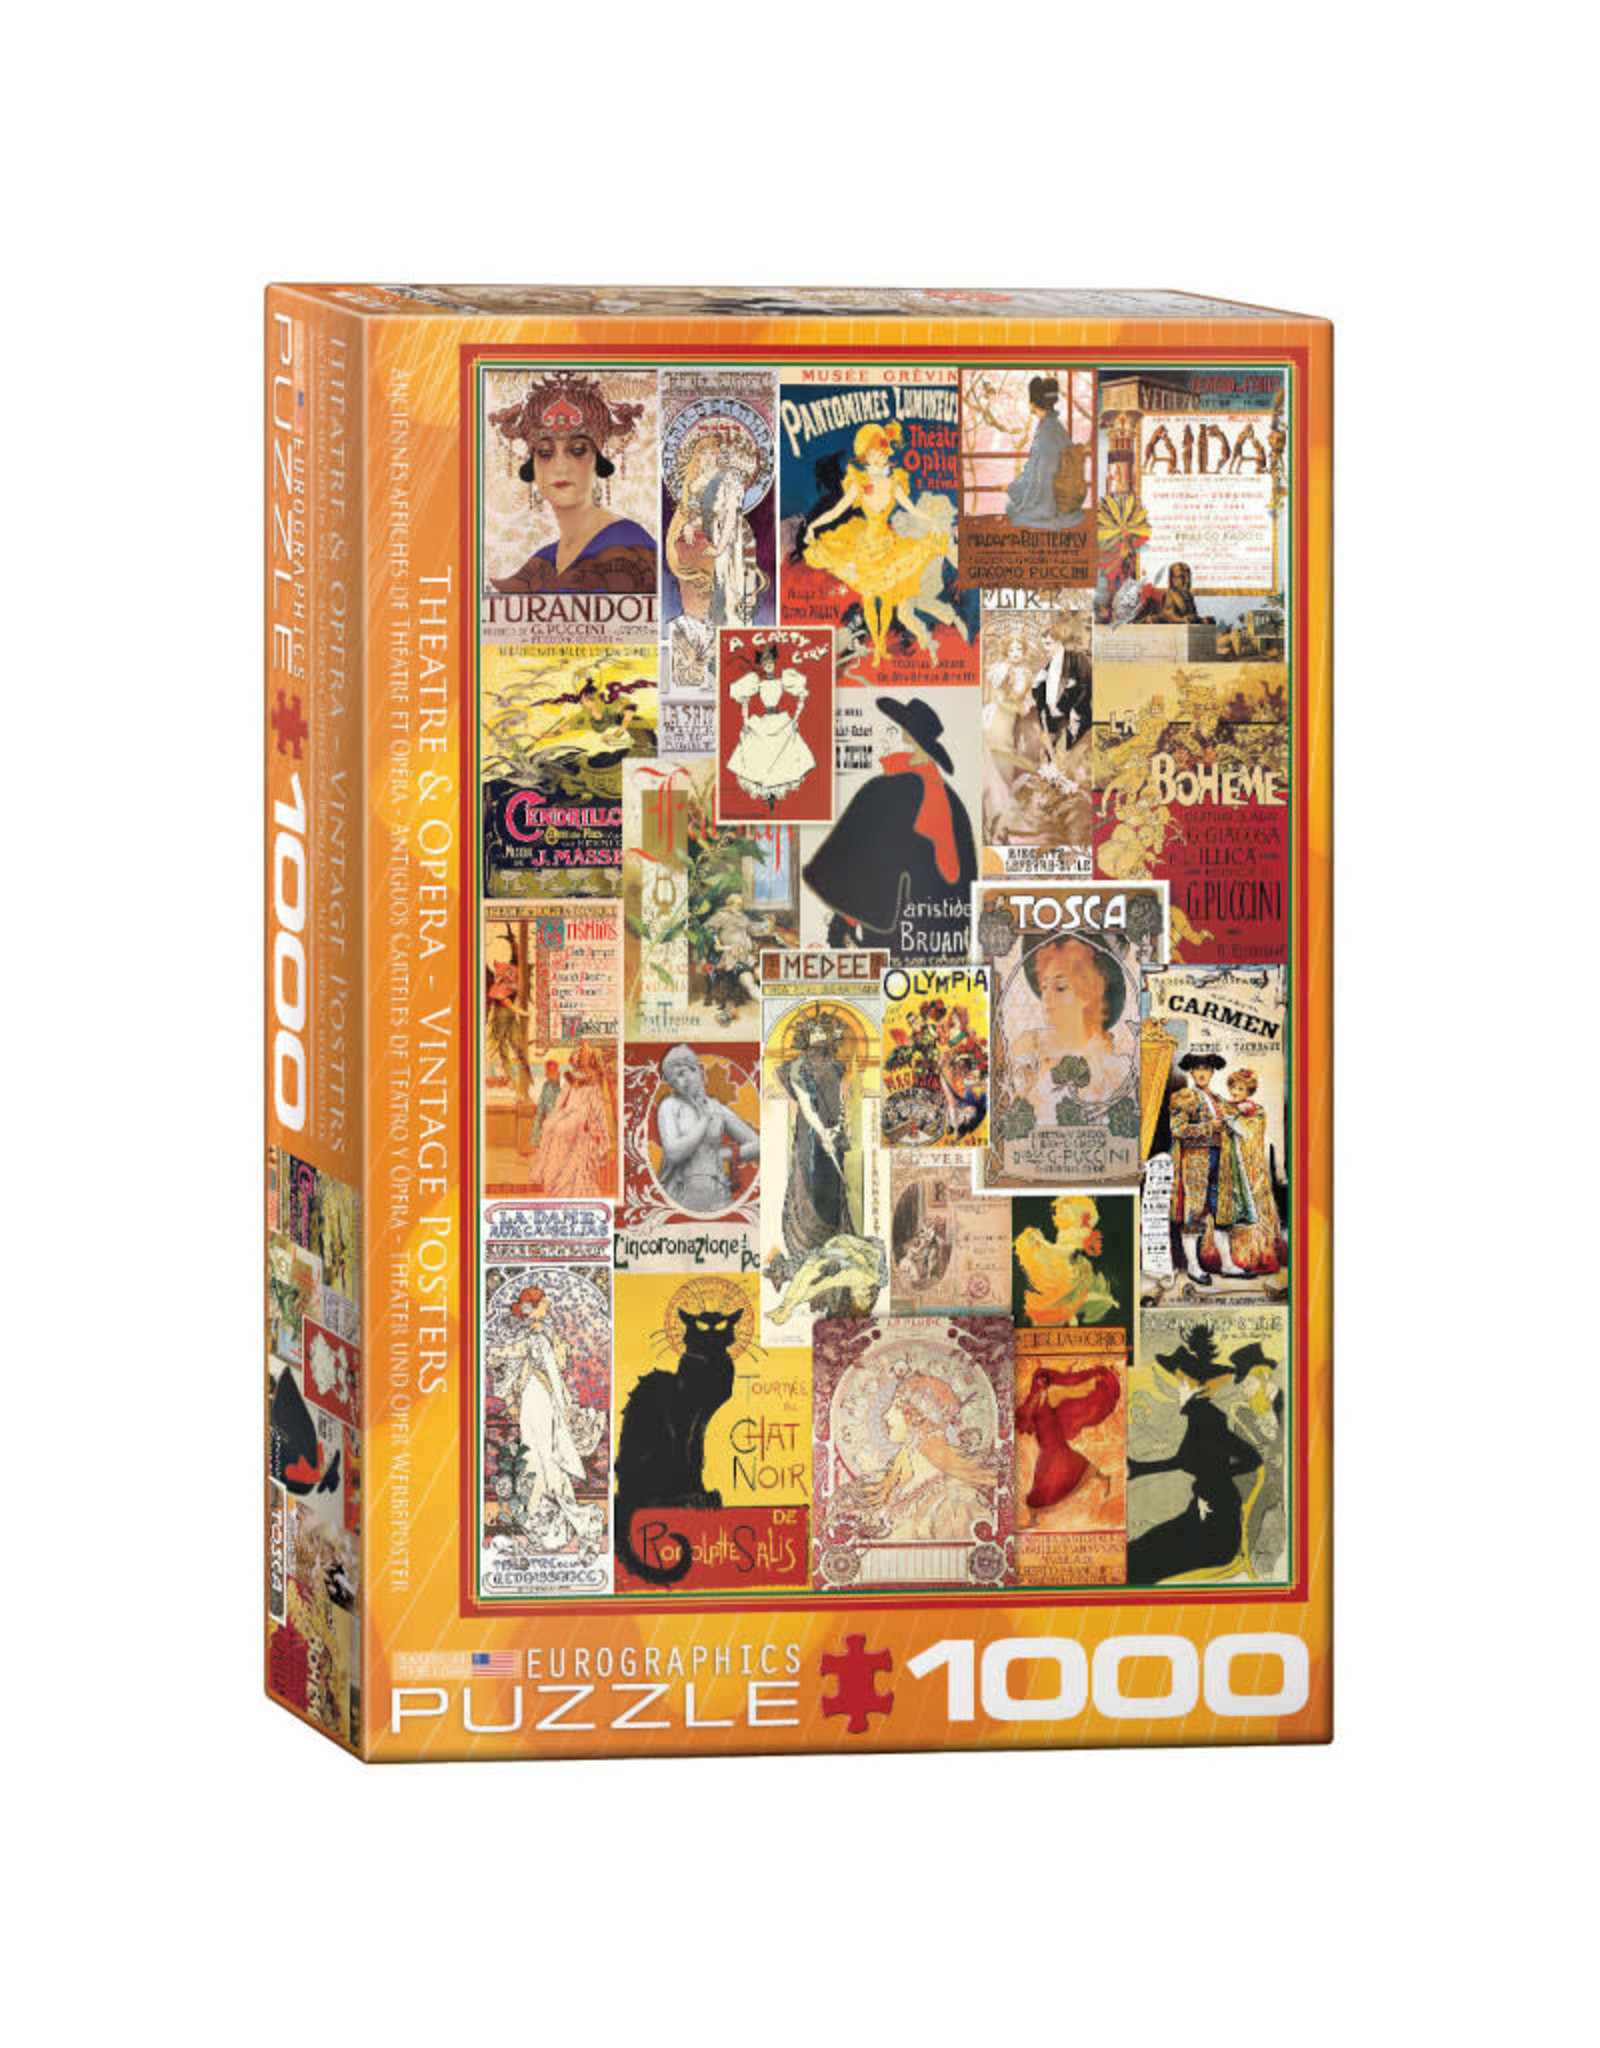 Eurographics Theater & Opera Vintage Posters  Puzzle 1000 PCS